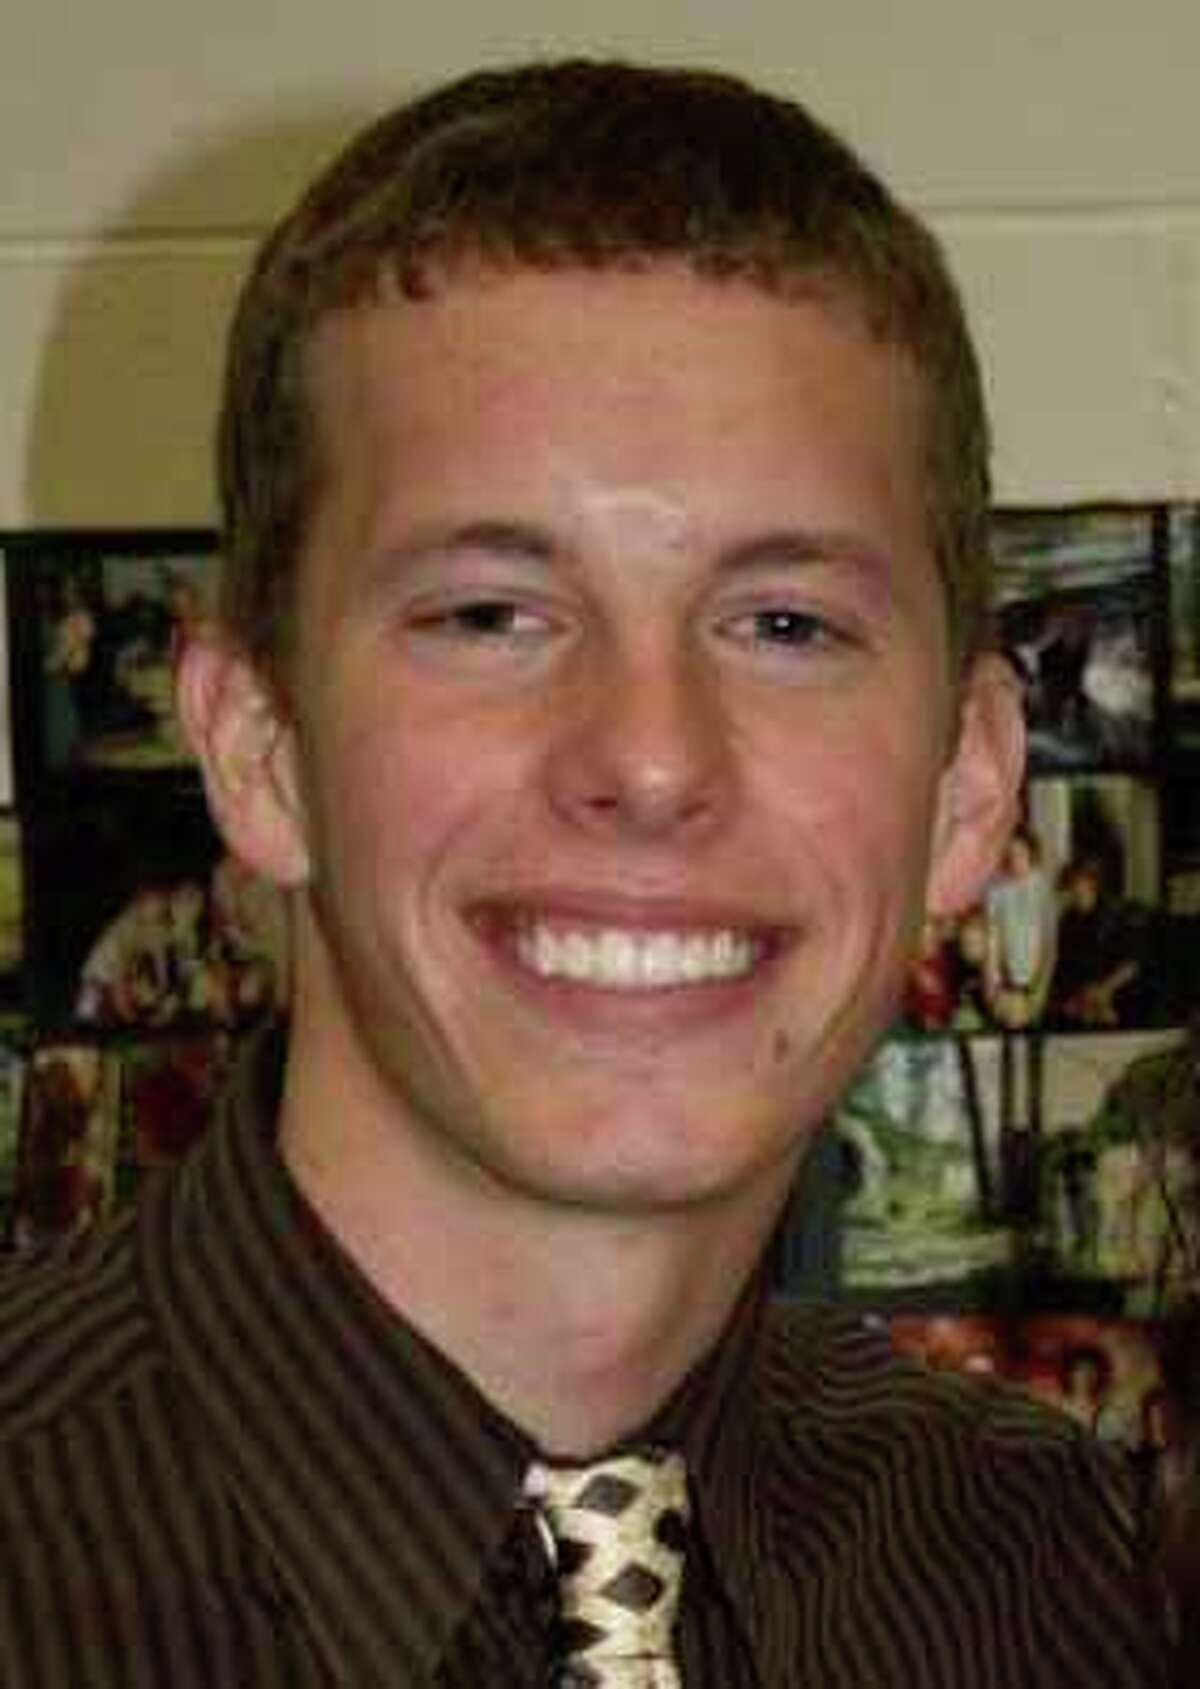 Cameron Redus, 23, was killed in Alamo Heights in 2013 by a University of the Incarnate Word police officer.